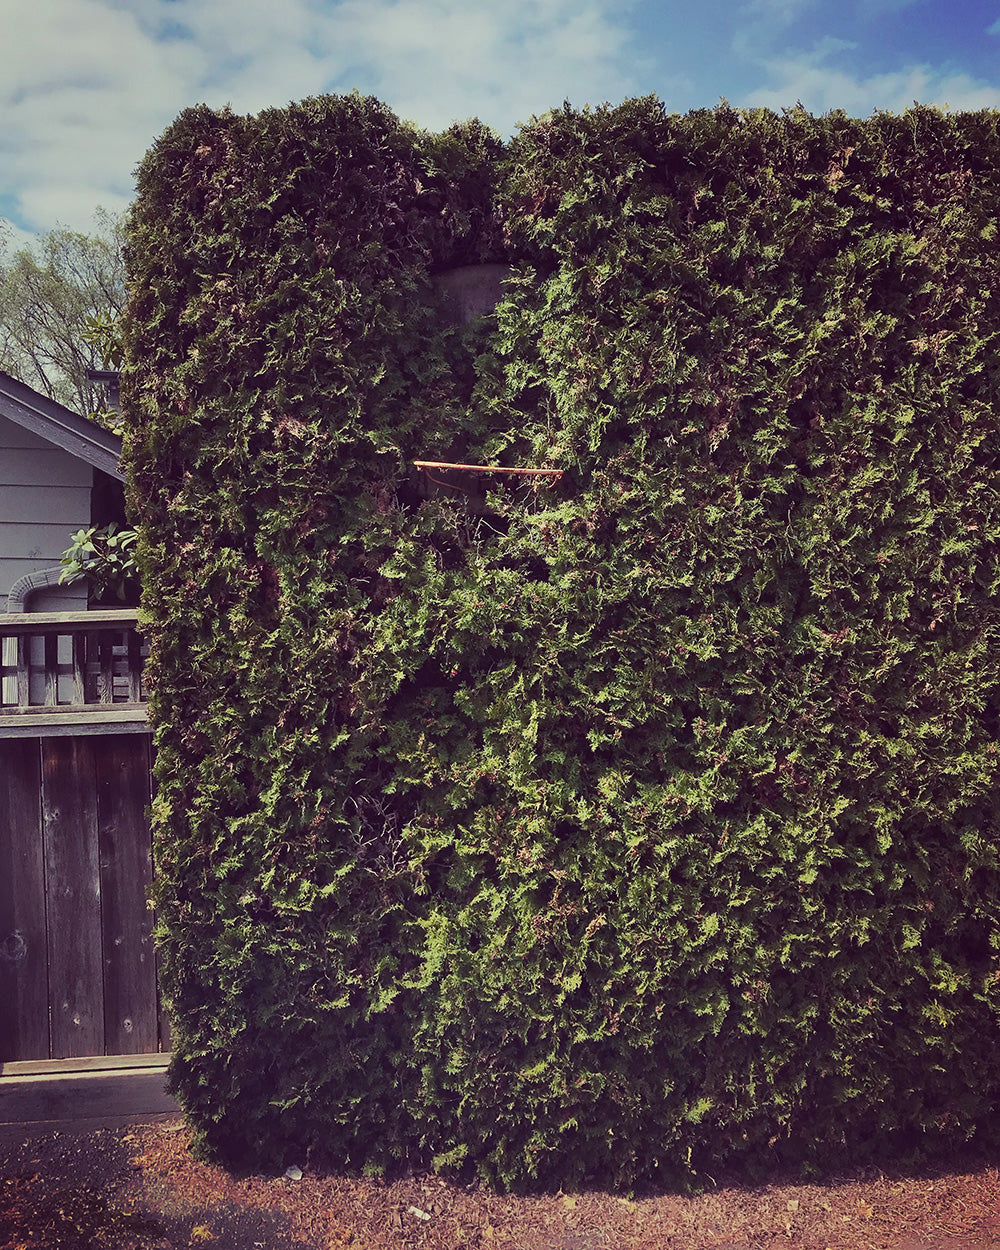 SPITGAN WEBZINE #3 Photo 12. Photo of basketball hoop nearly covered by the overgrowth of a hedge. Vancouver, BC